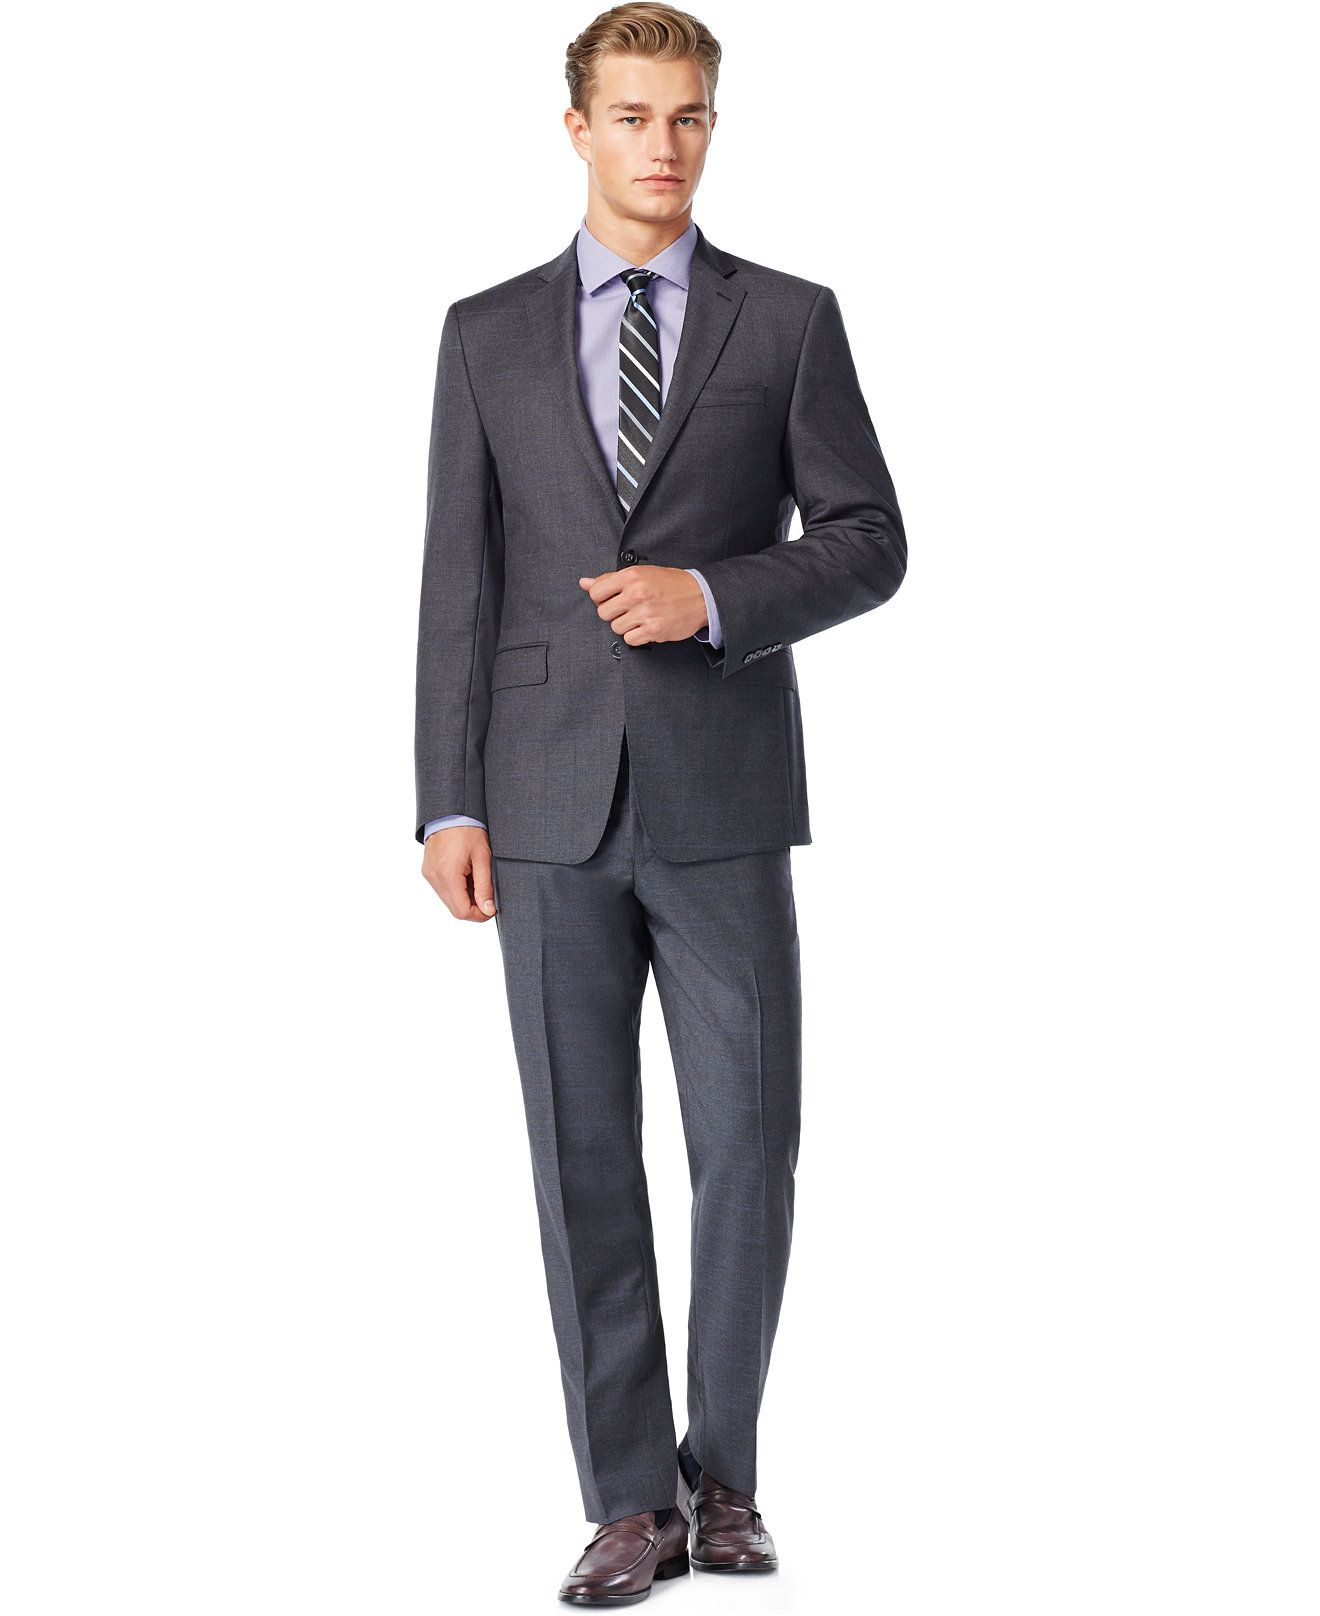 Calvin Klein Grey Windowpane with Blue Deco Extreme Slim-Fit Suit - Suits \u0026  Suit Separates - Men - Macy\u0027s